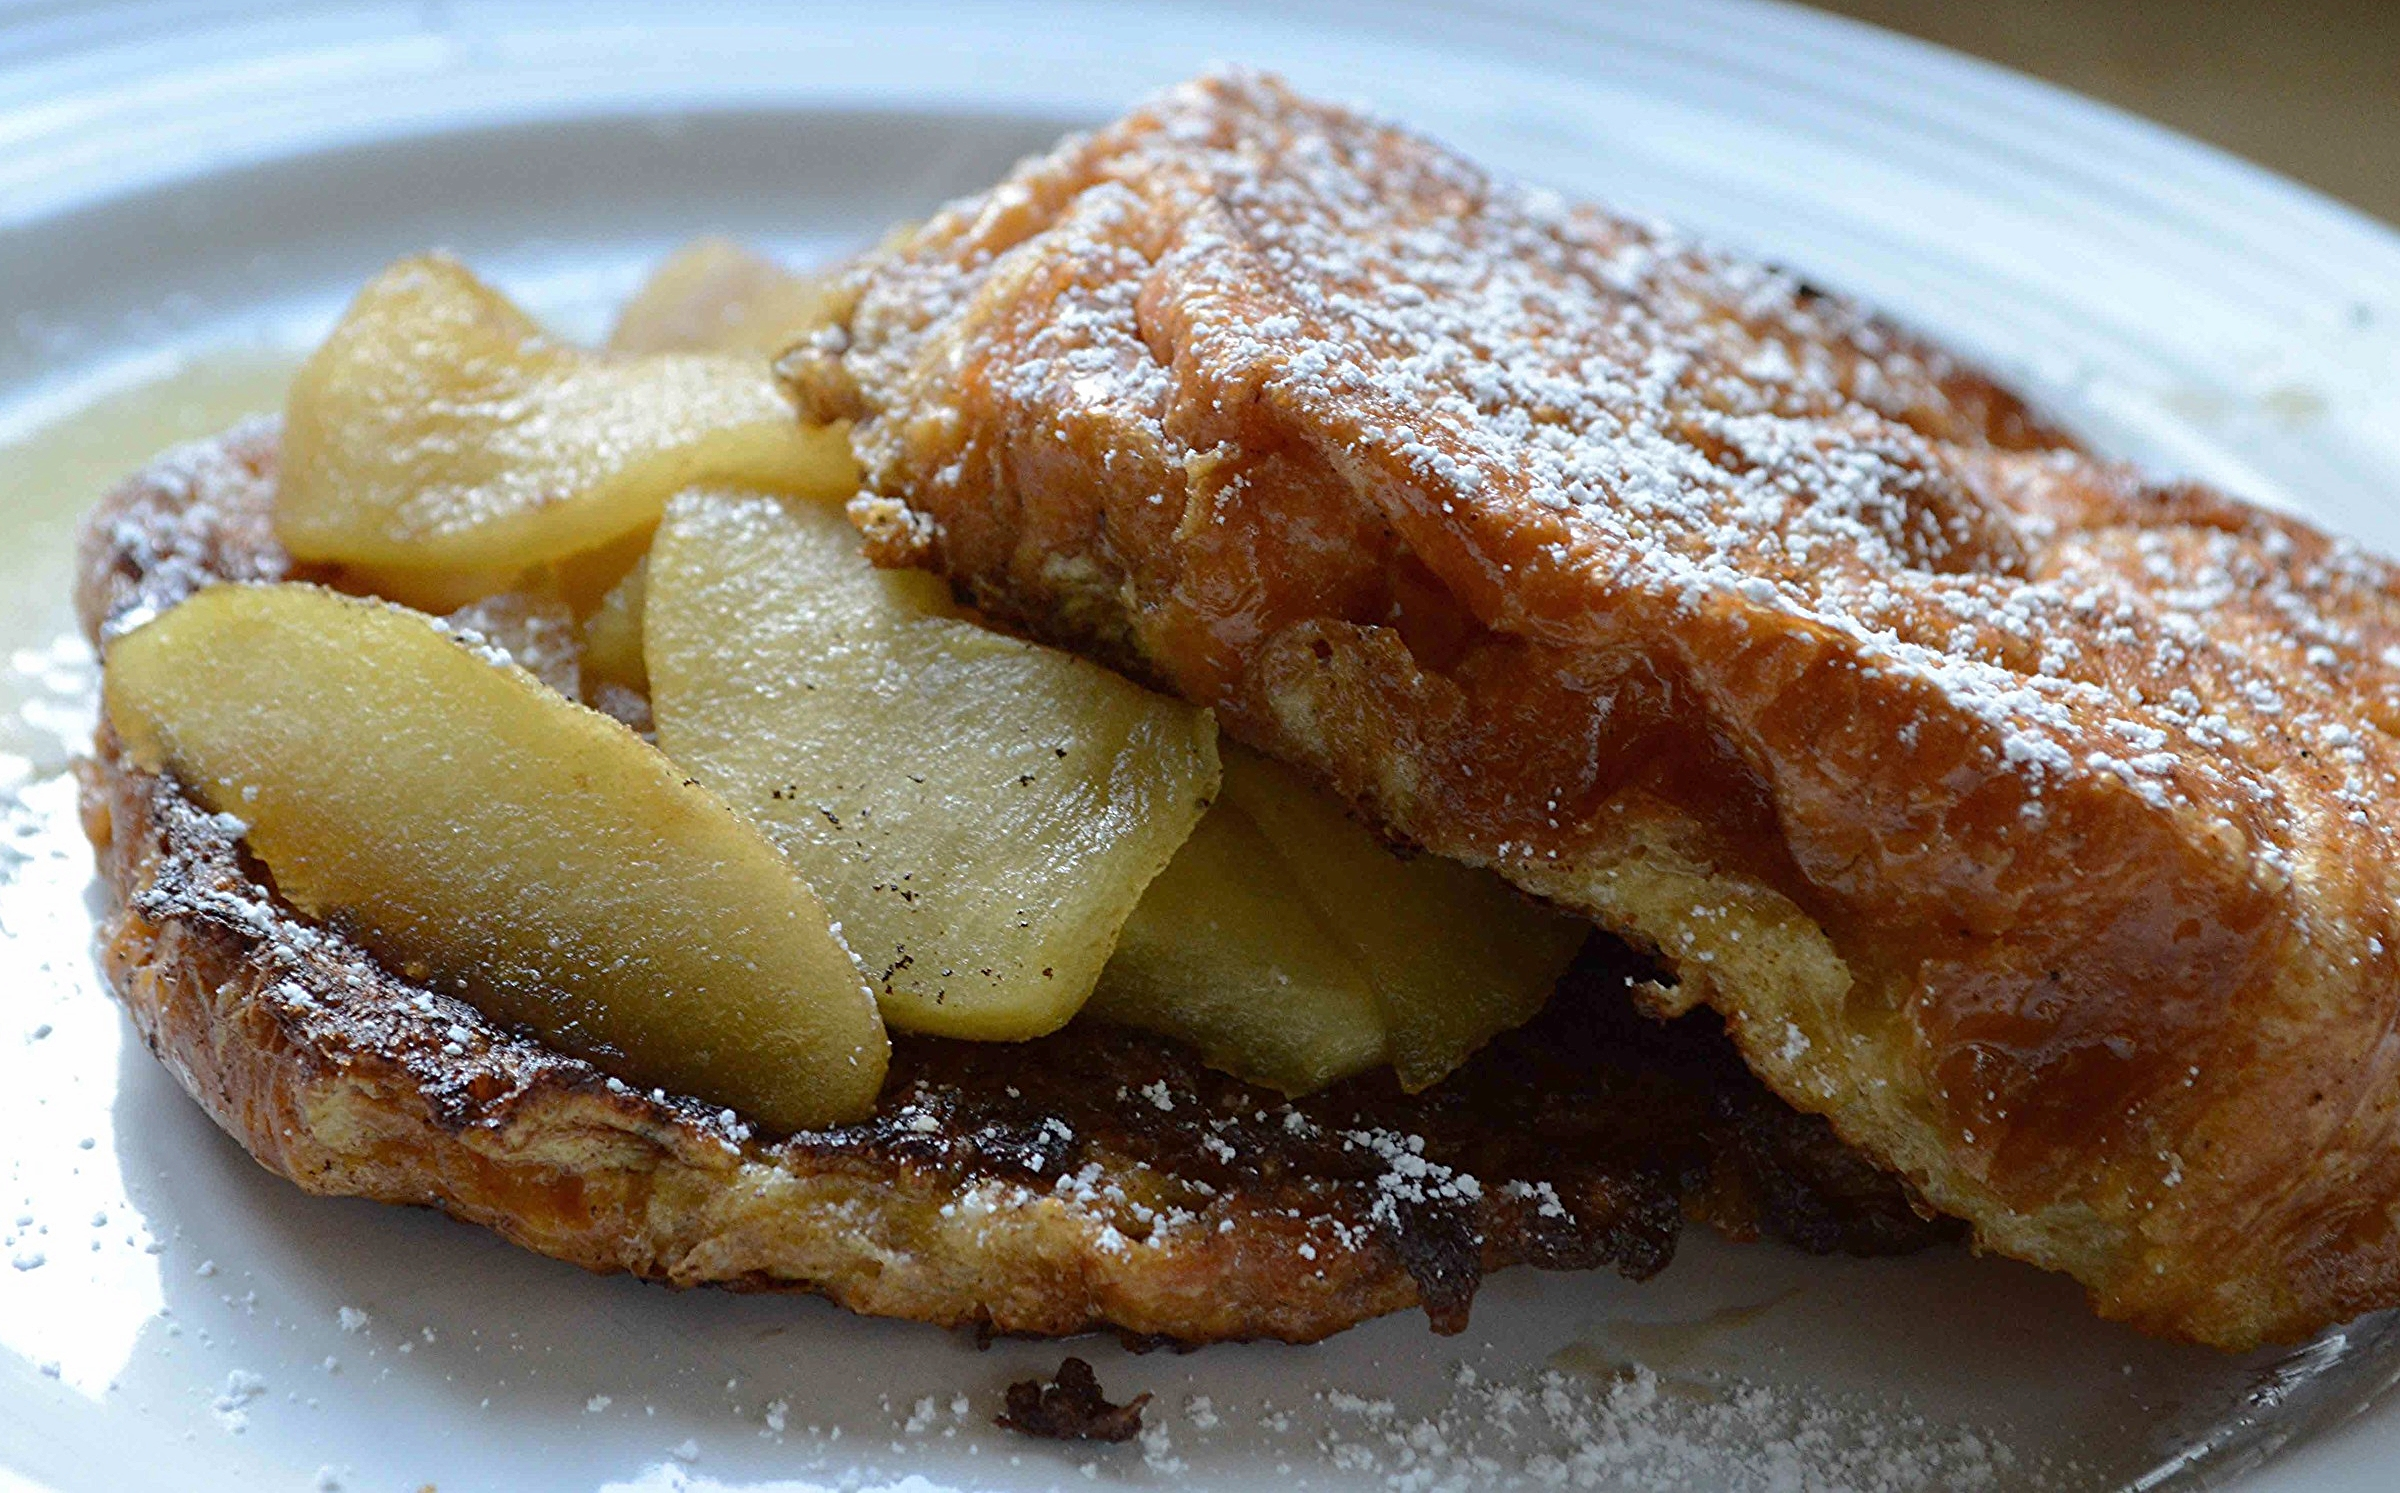 Tyler Florence's Croissant French Toast with Soft Caramel Apples